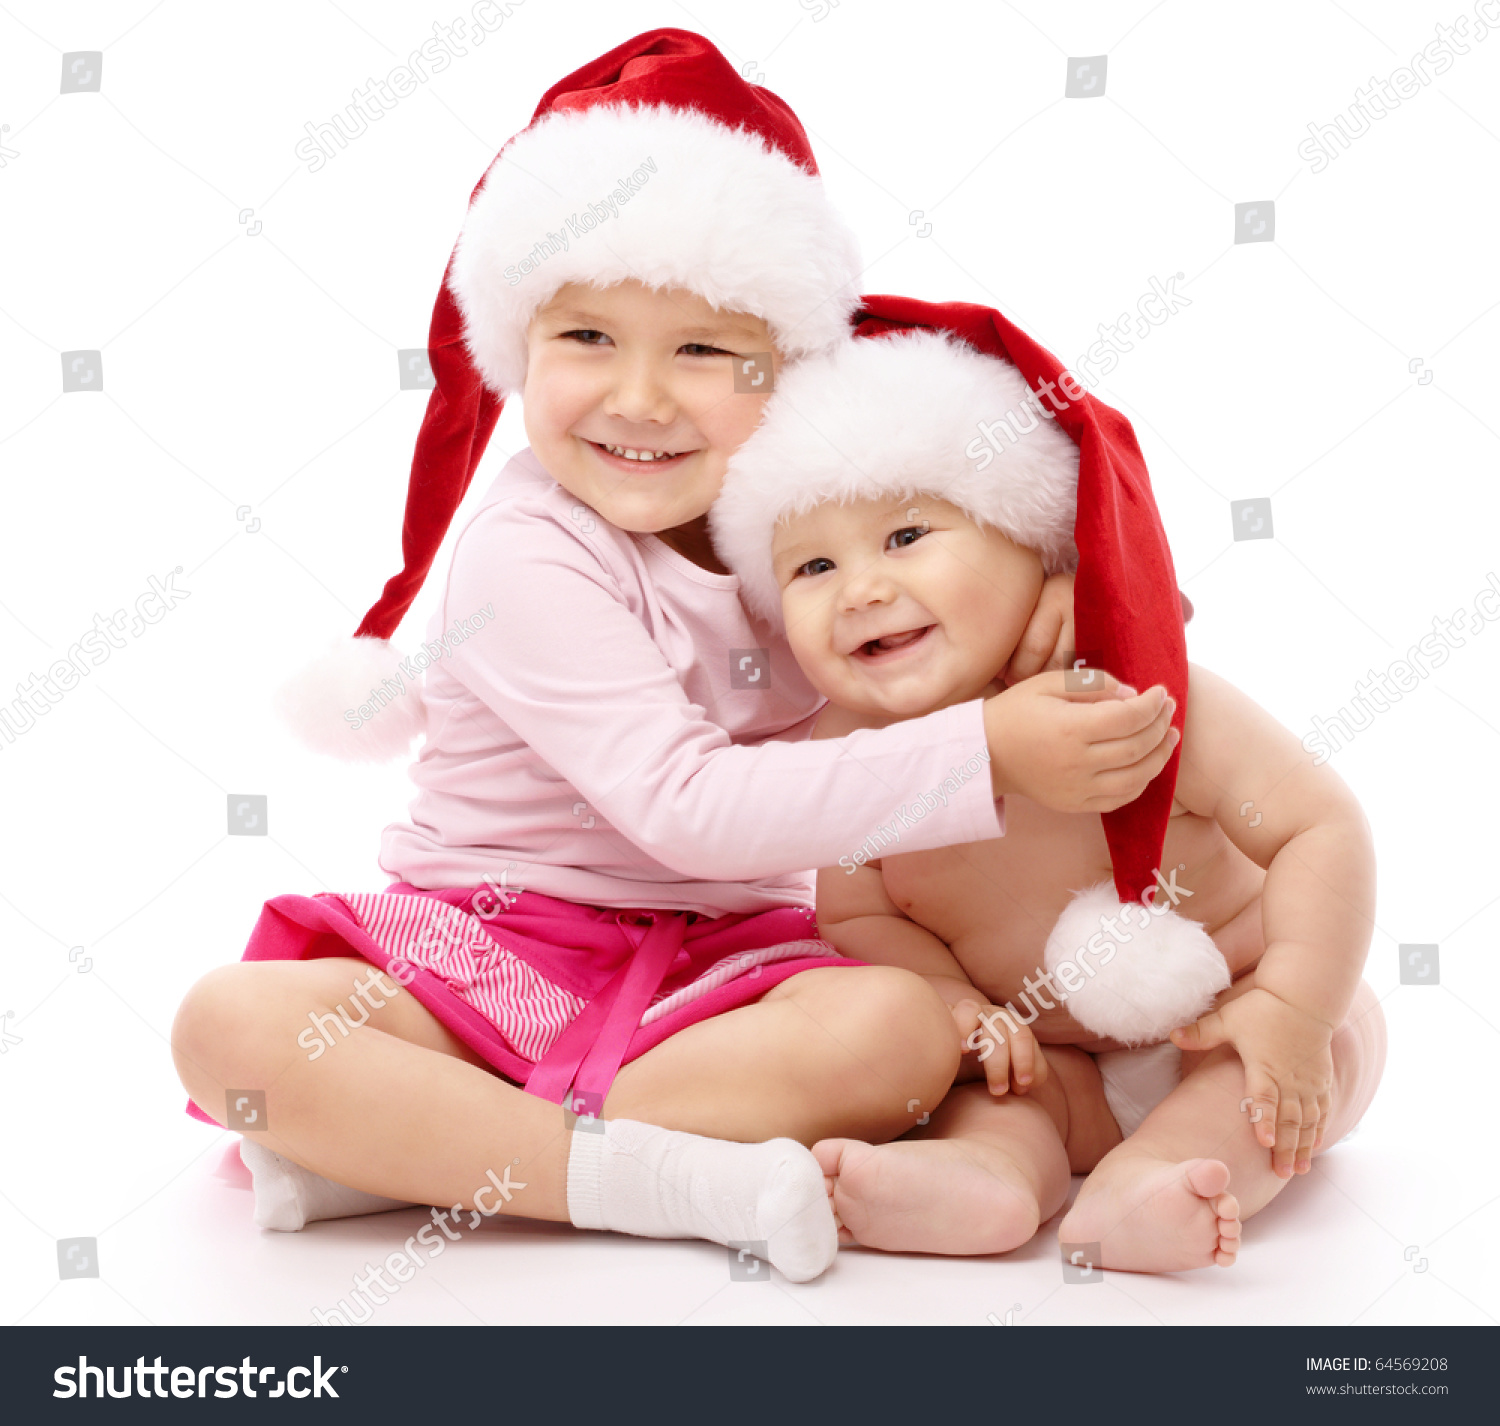 Girl hugs her little brother both wearing red christmas caps and